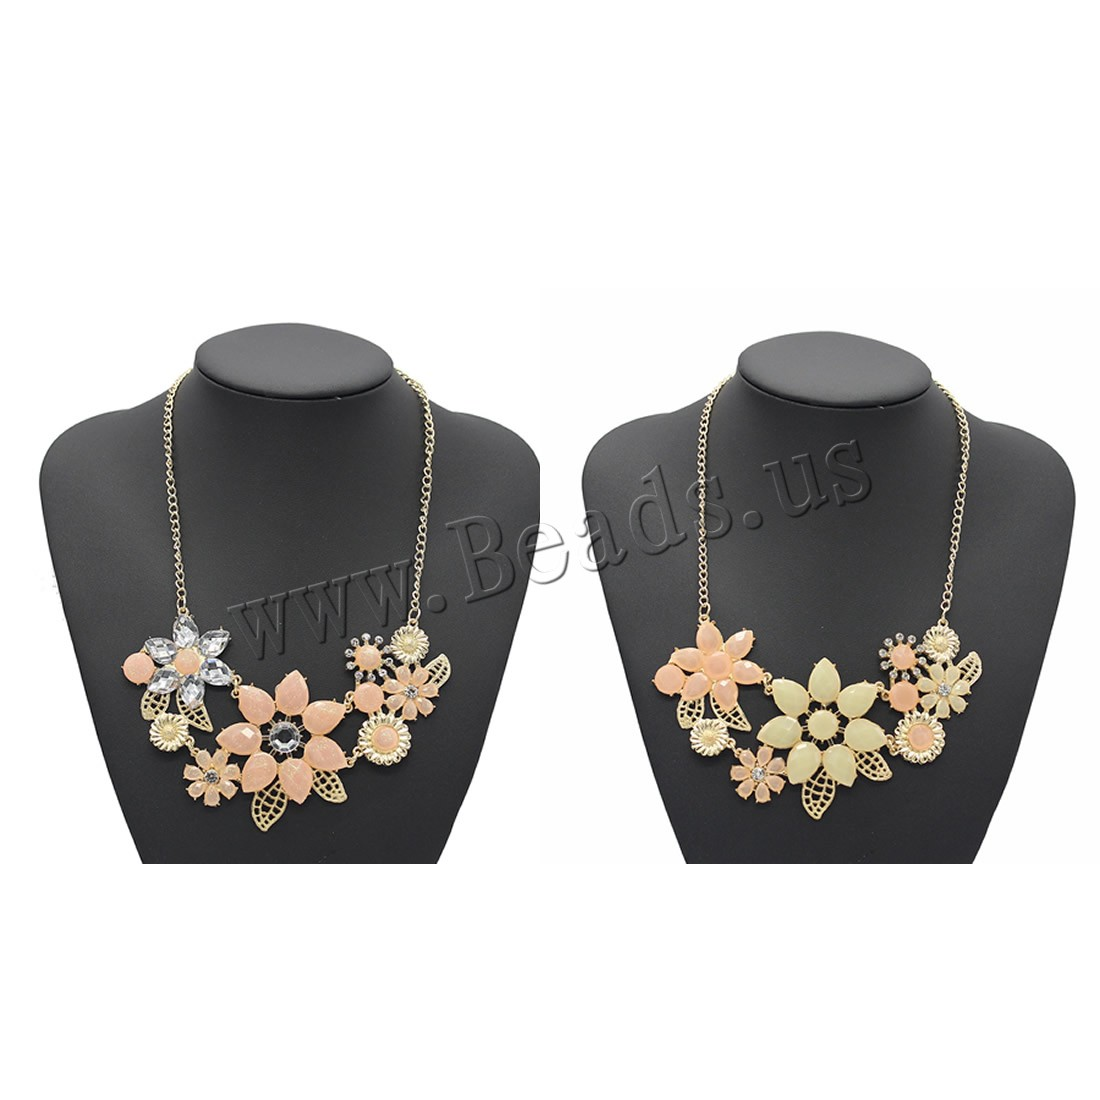 Buy Resin Necklace Zinc Alloy Crystal & Resin 5cm extender chain Flower gold color plated twist oval chain & woman & faceted & rhinestone colors choice lead & cadmium free 450mm Sold Per Approx 17.5 Inch Strand